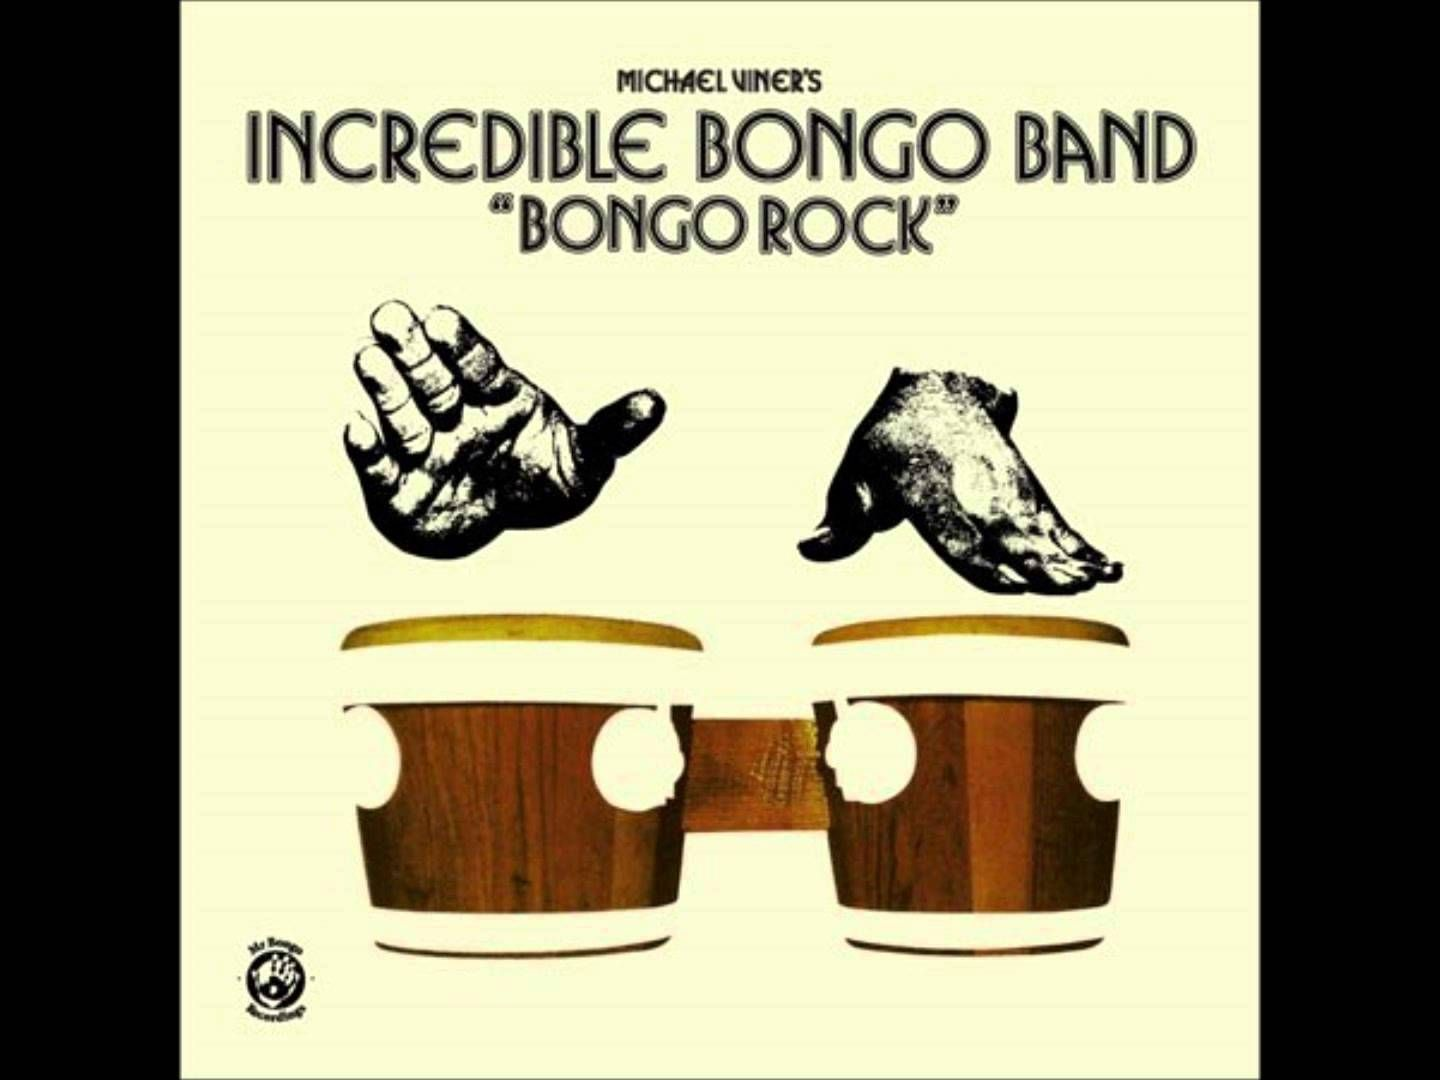 1973] Incredible Bongo Band - Apache | sub-culture | hip hop [the ...